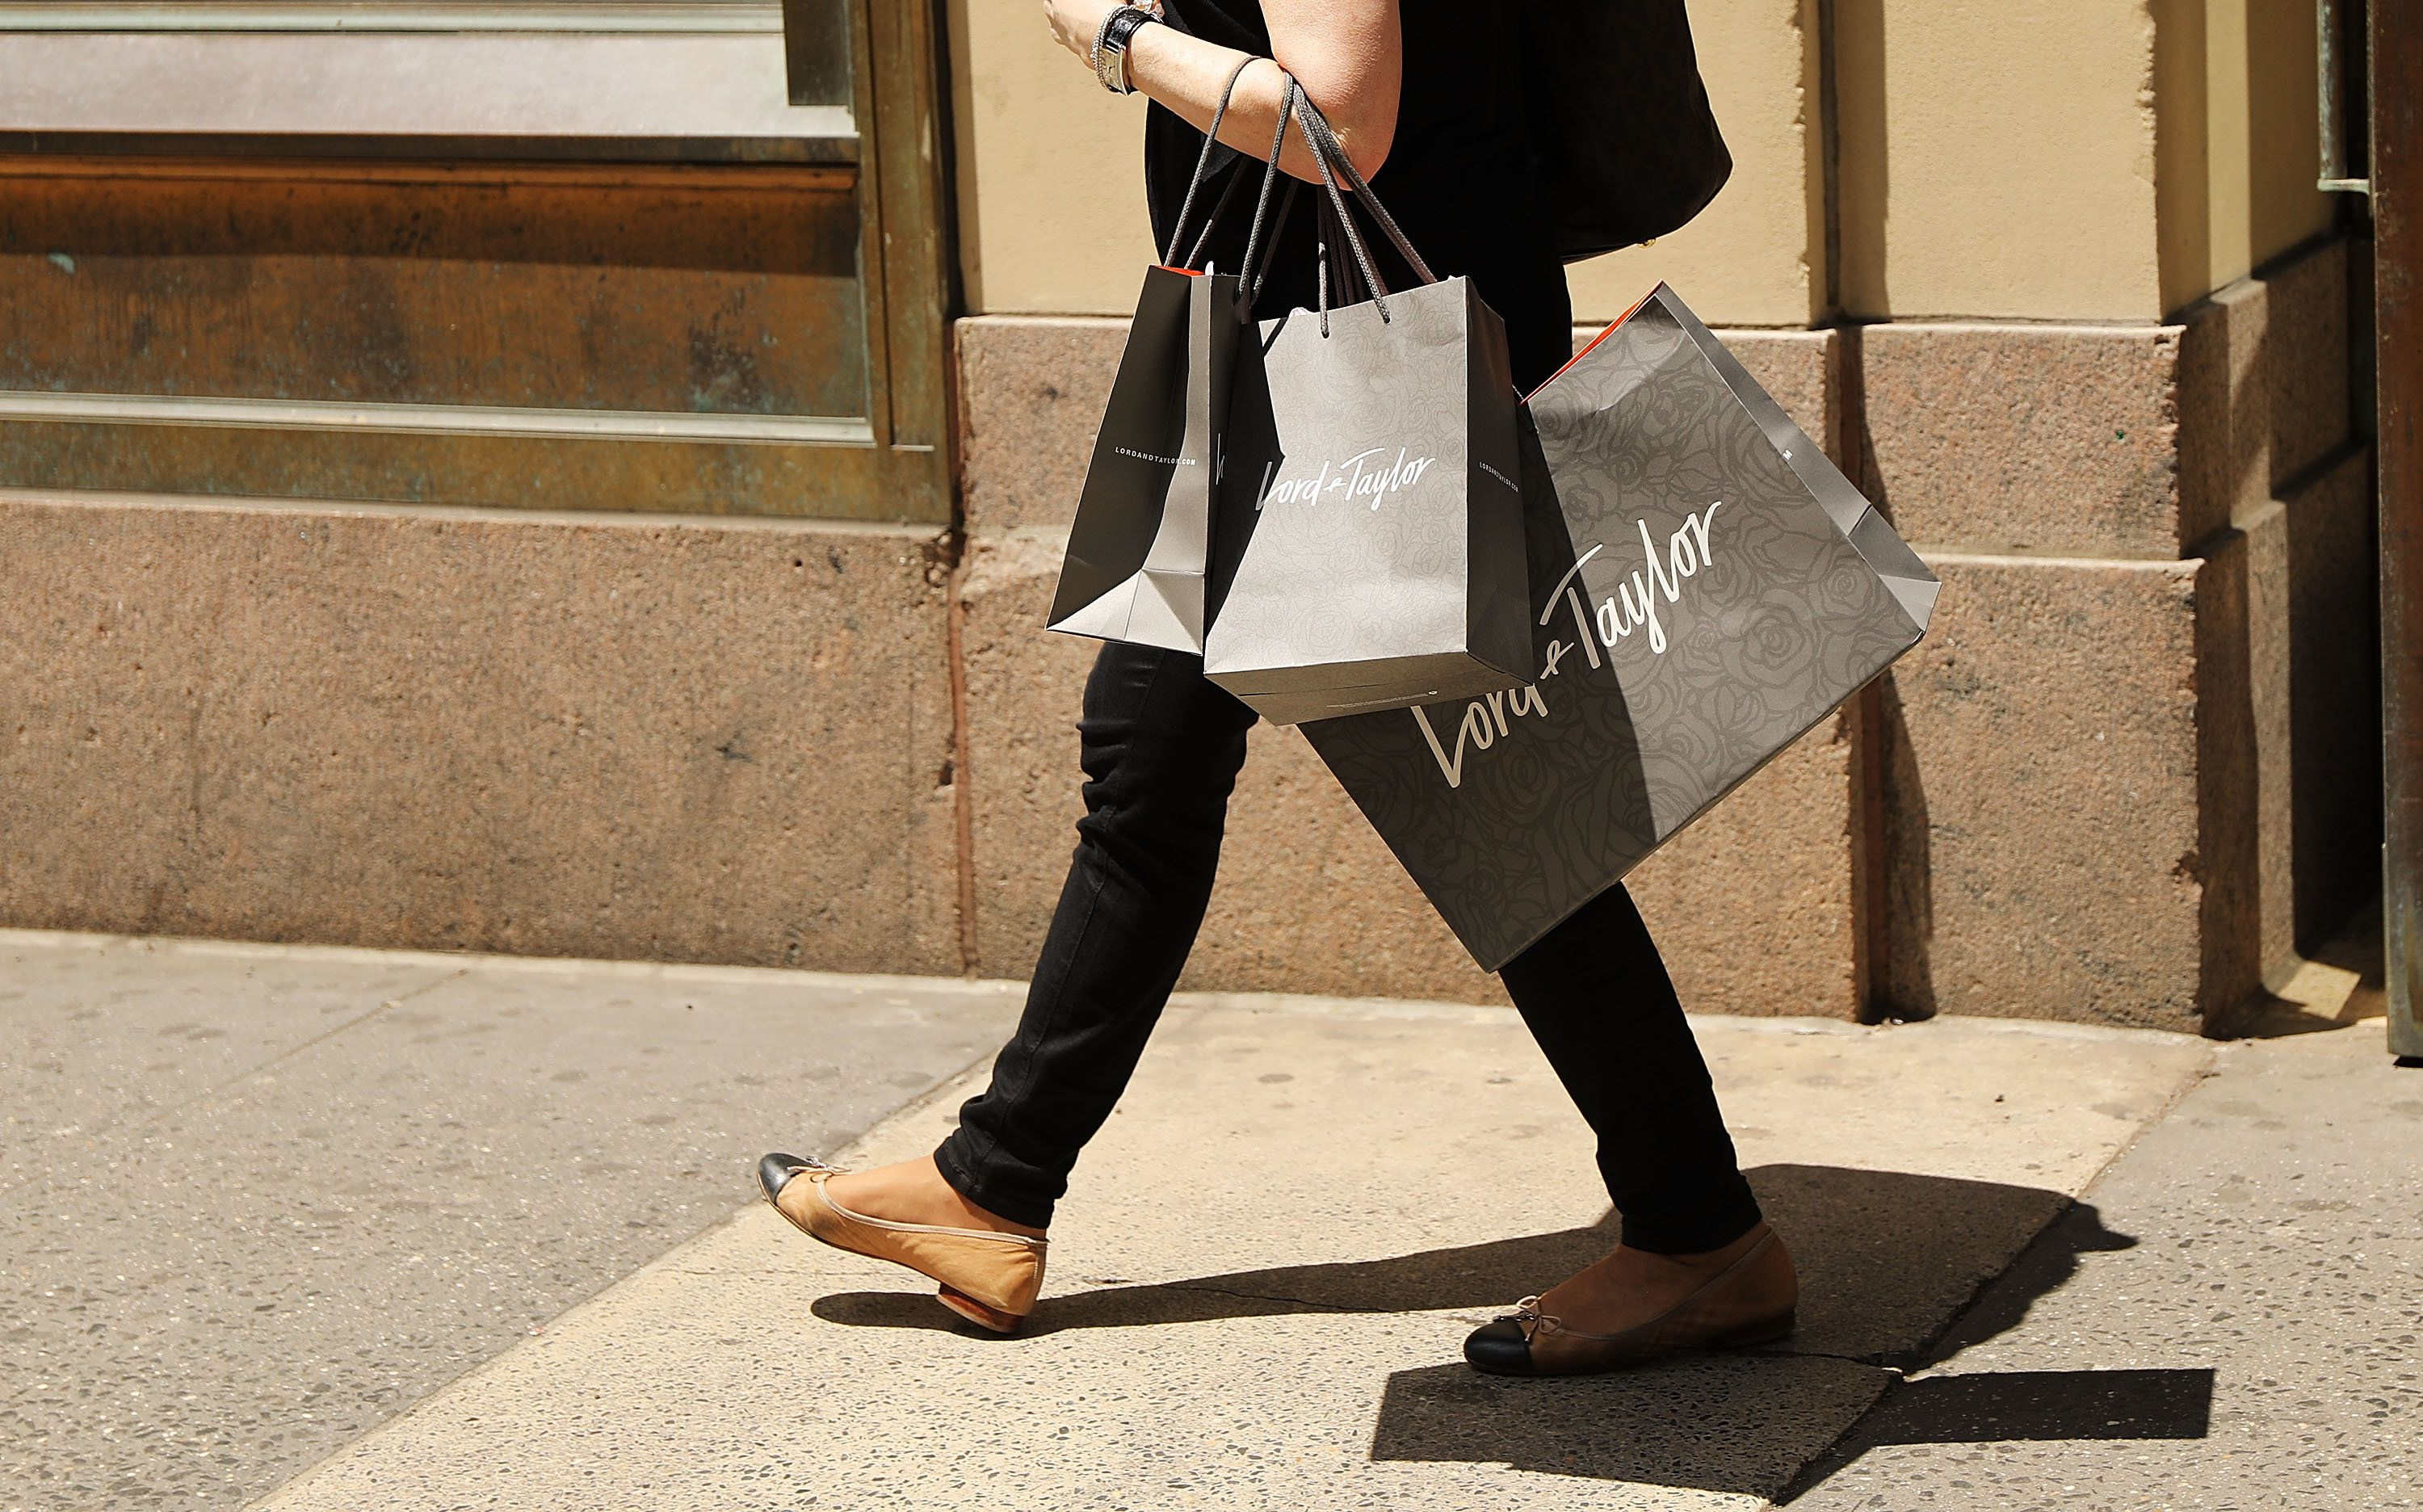 NEW YORK, NY - JUNE 06:  A woman walks out of Lord & Taylor's flagship store on 5th Avenue in Manhattan on June 6, 2018 in New York City. The 192-year-old chain owned by Canada's Hudson's Bay Co has announced Tuesday it was closing 10 of its 50 stores, including its iconic 5th Ave location.  (Photo by Spencer Platt/Getty Images)